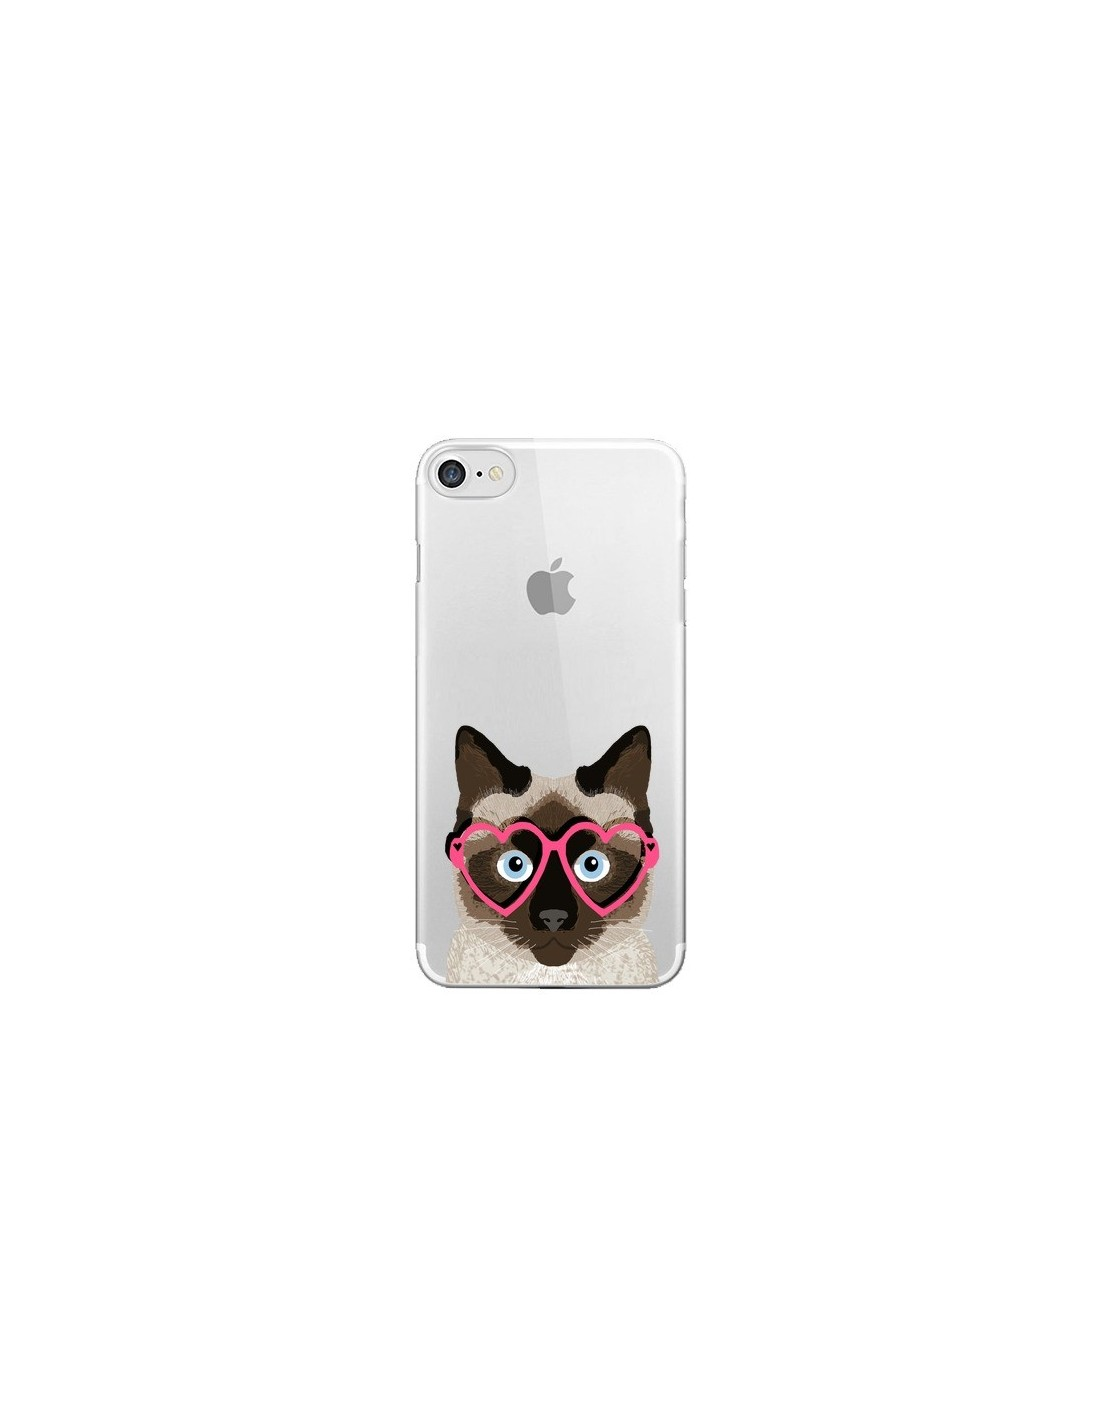 coque chat marron lunettes coeurs transparente pour iphone 7 et 8 pet friendly. Black Bedroom Furniture Sets. Home Design Ideas